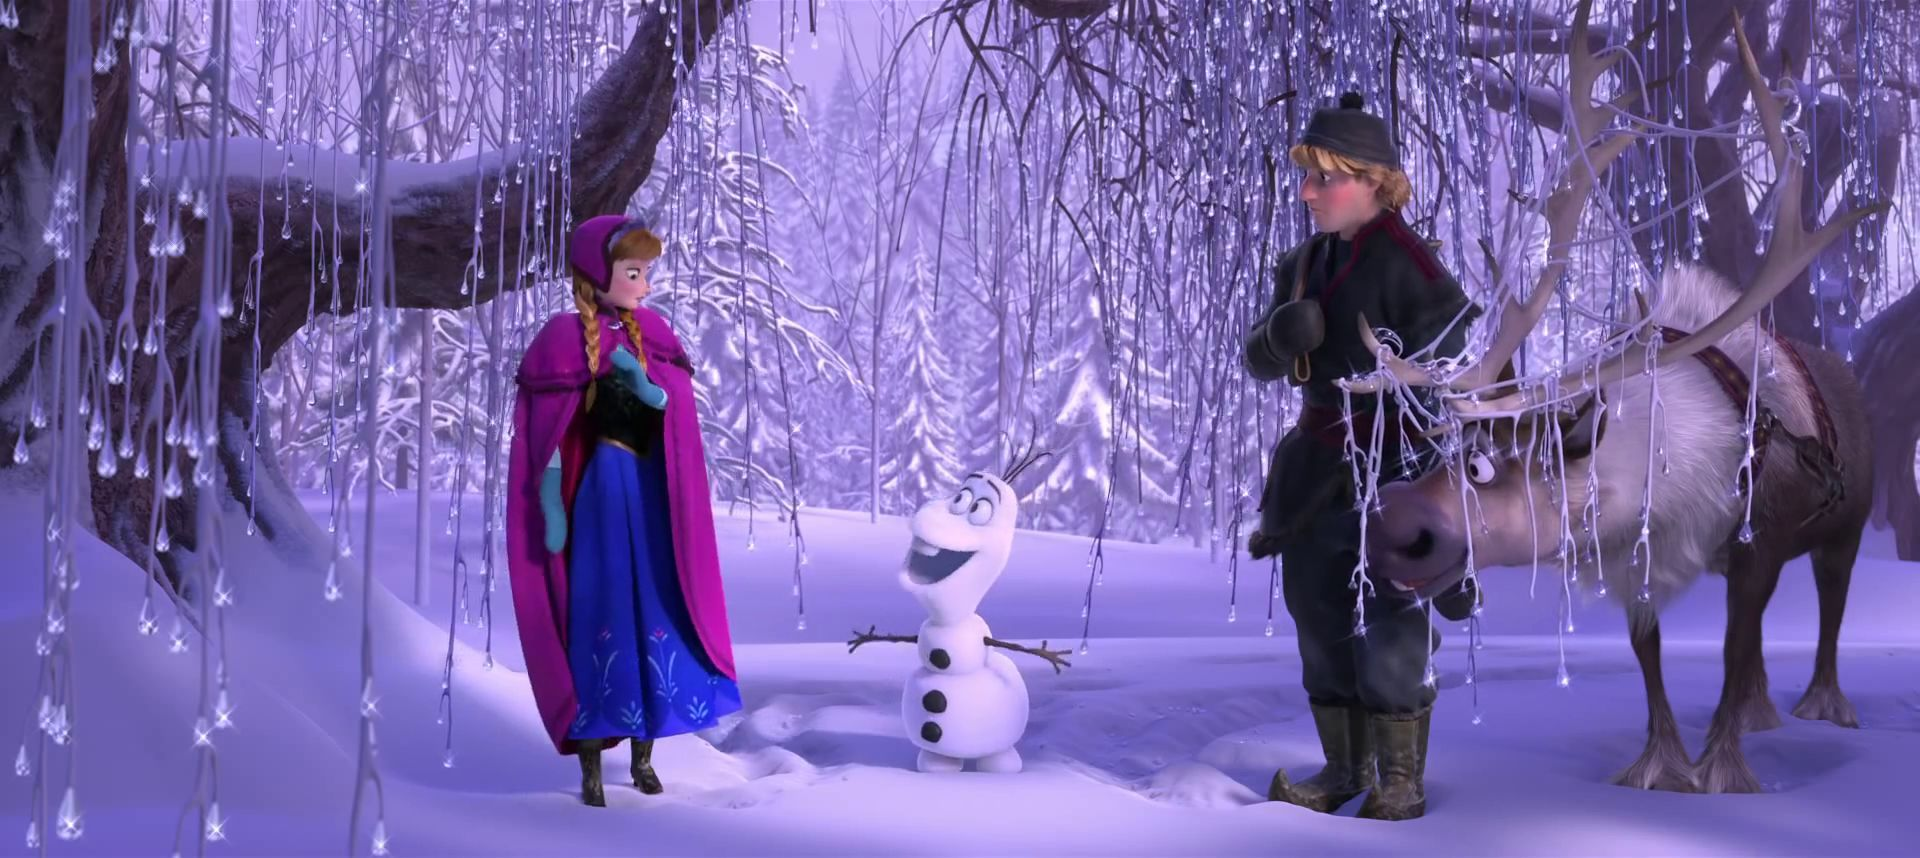 Frozen movie images google search animation pinterest frozen movie images google search voltagebd Gallery